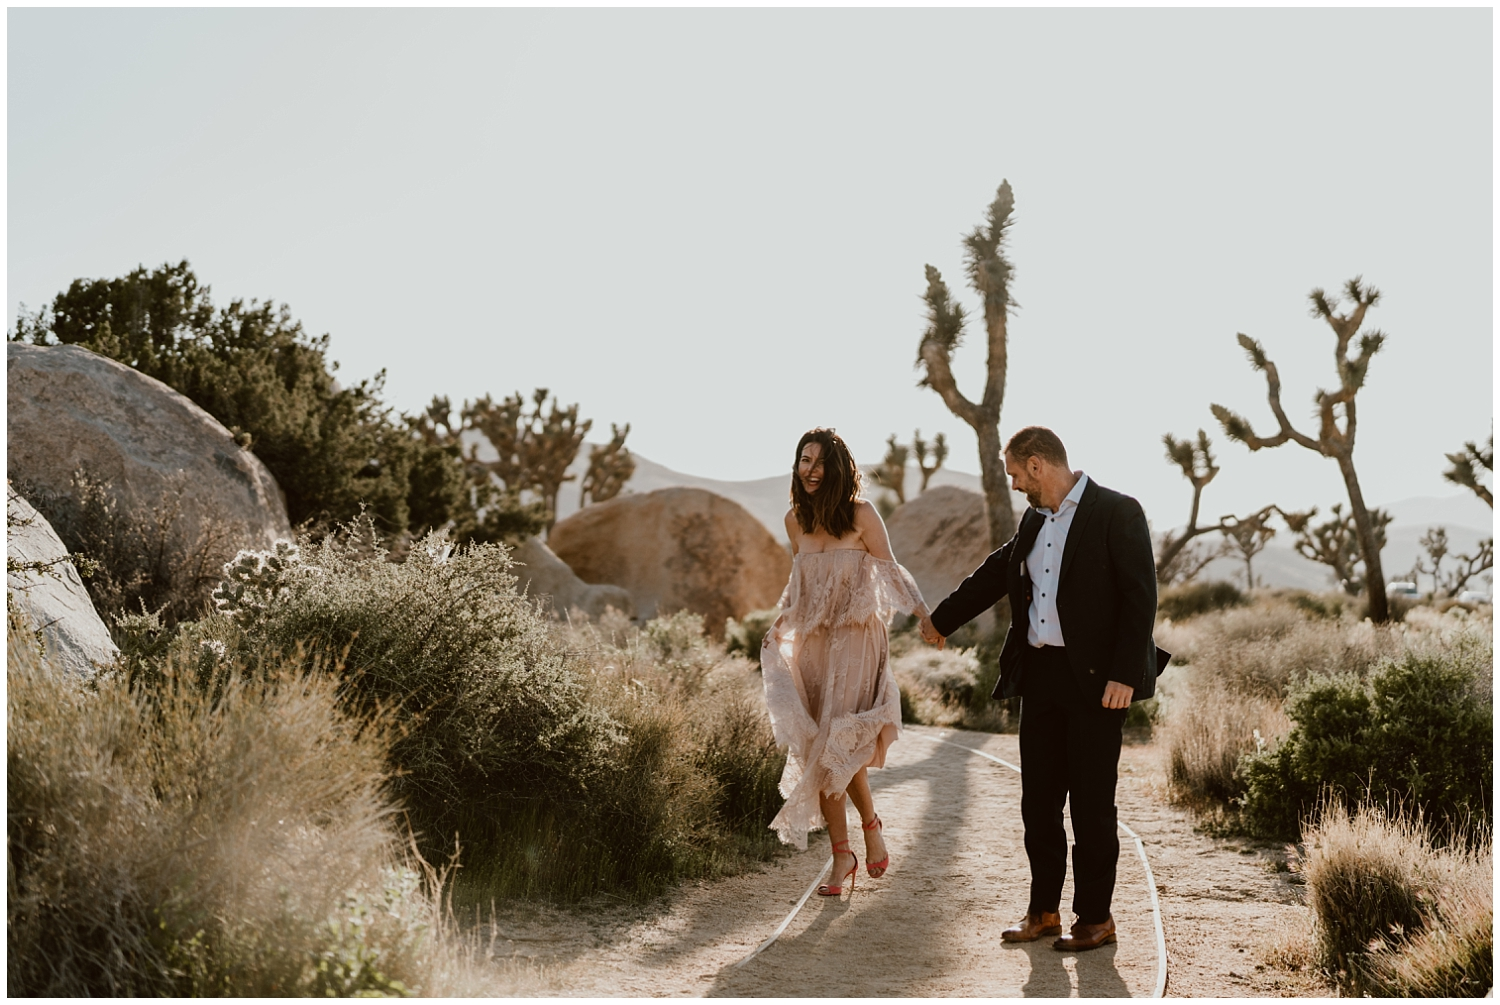 Cap-Rock-Joshua-Tree-Elopement-0019.jpg